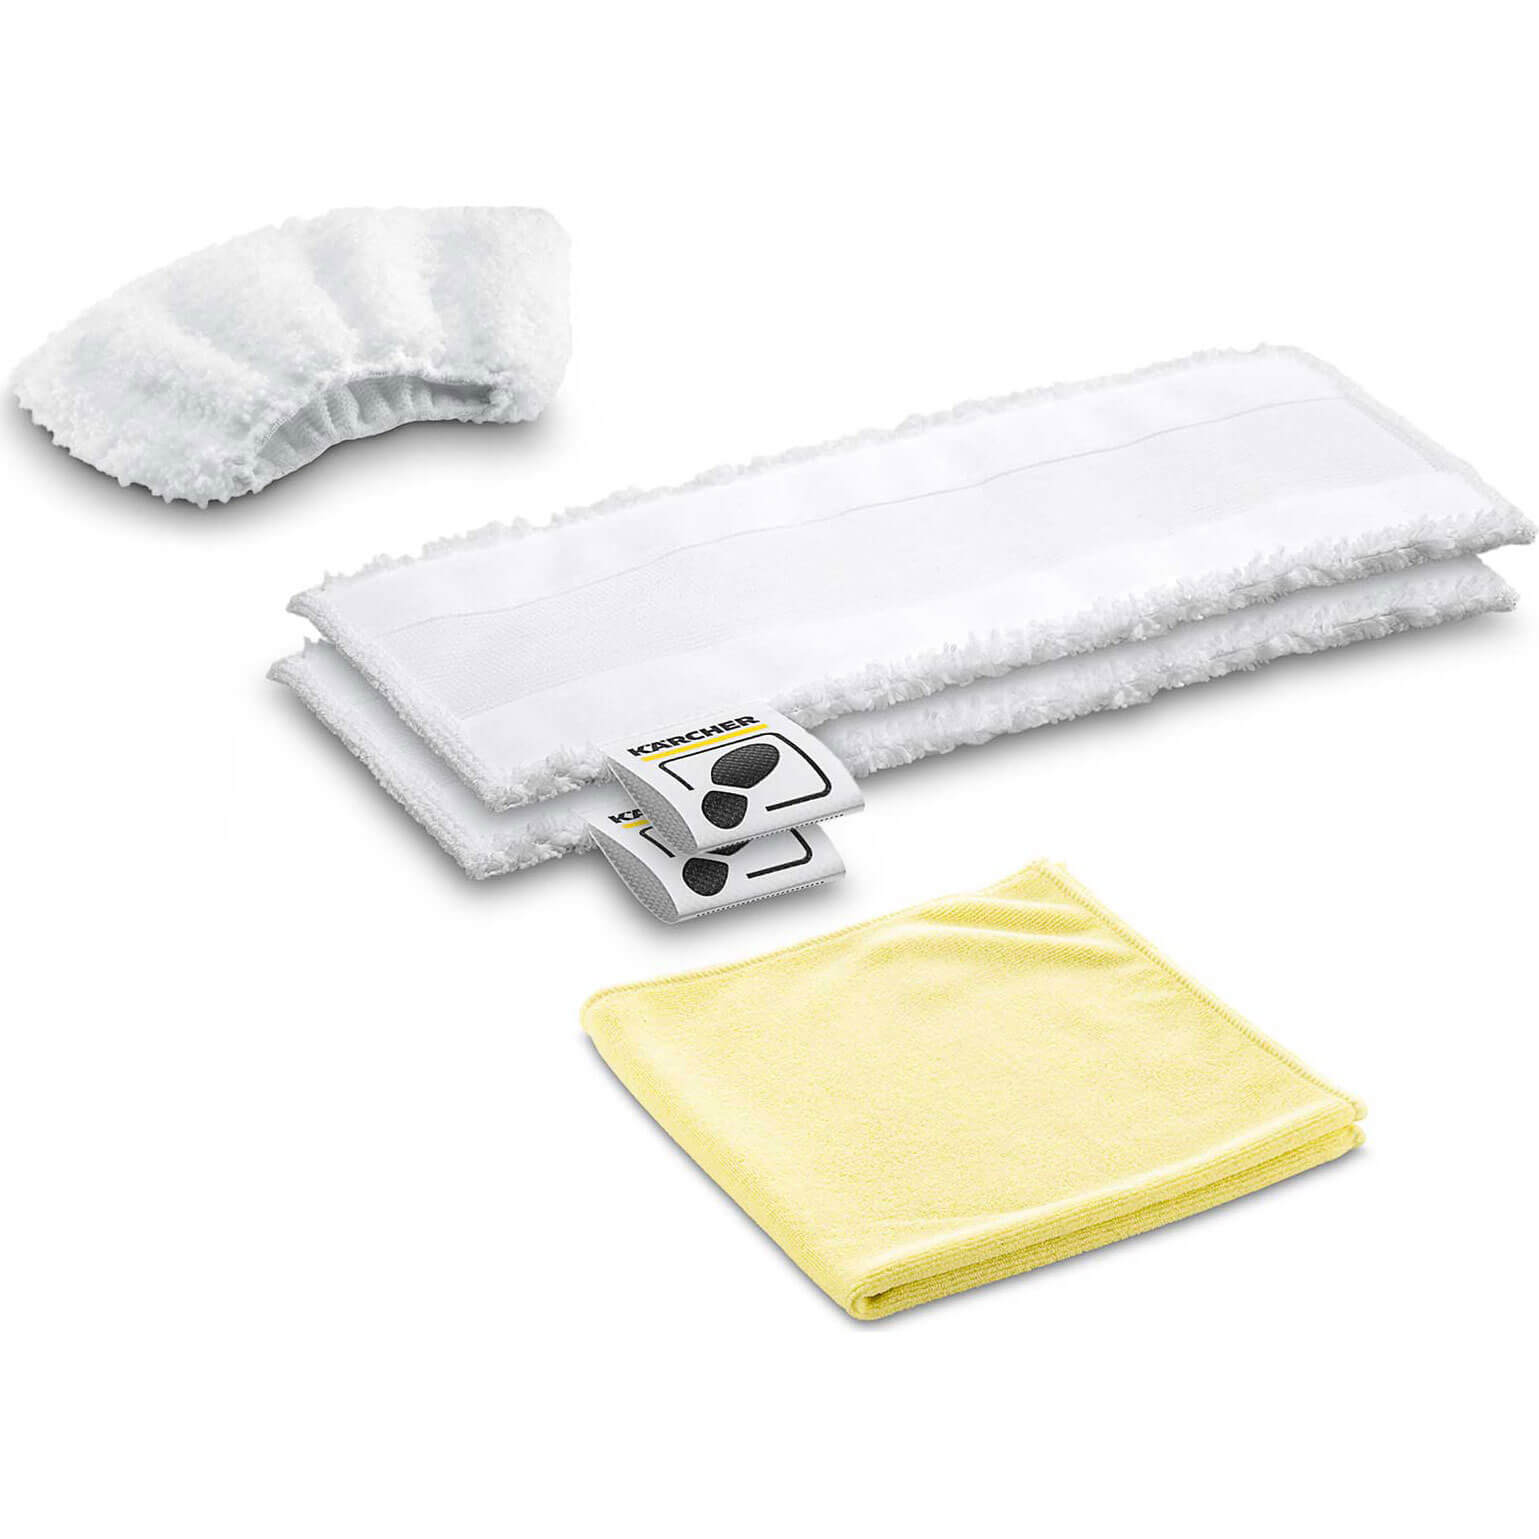 Karcher Floor Tool Kitchen Microfibre Cloth Set for SC EASYFIX Steam Cleaners